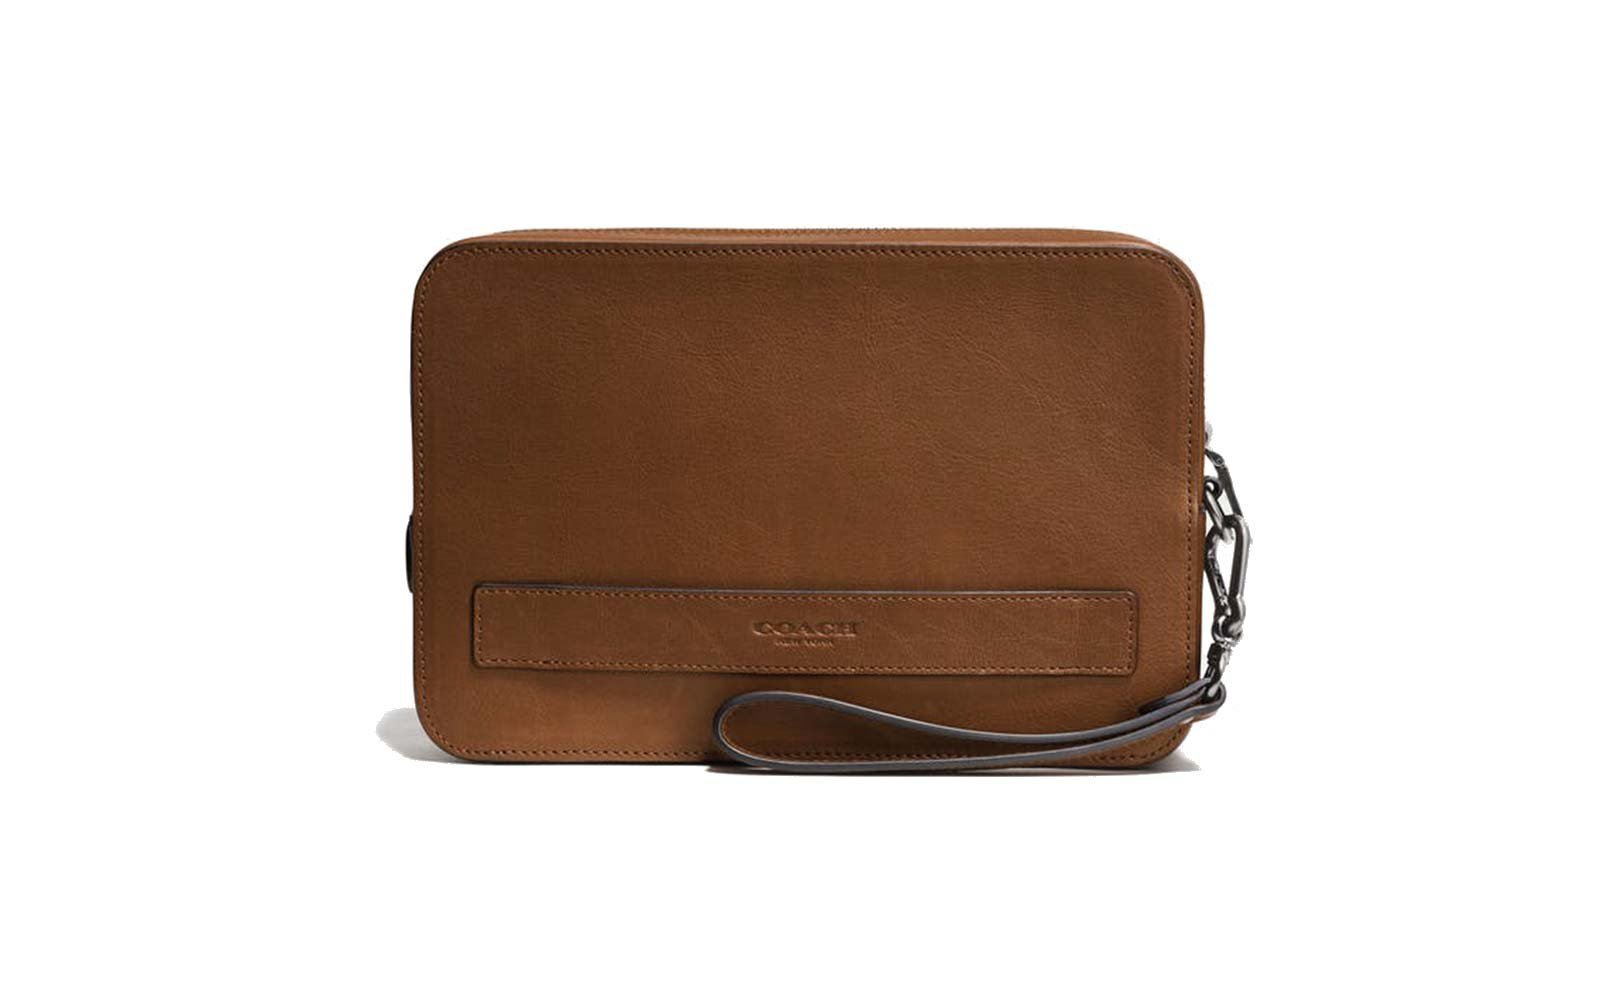 Coach Leather Pouchette Travel Wallet